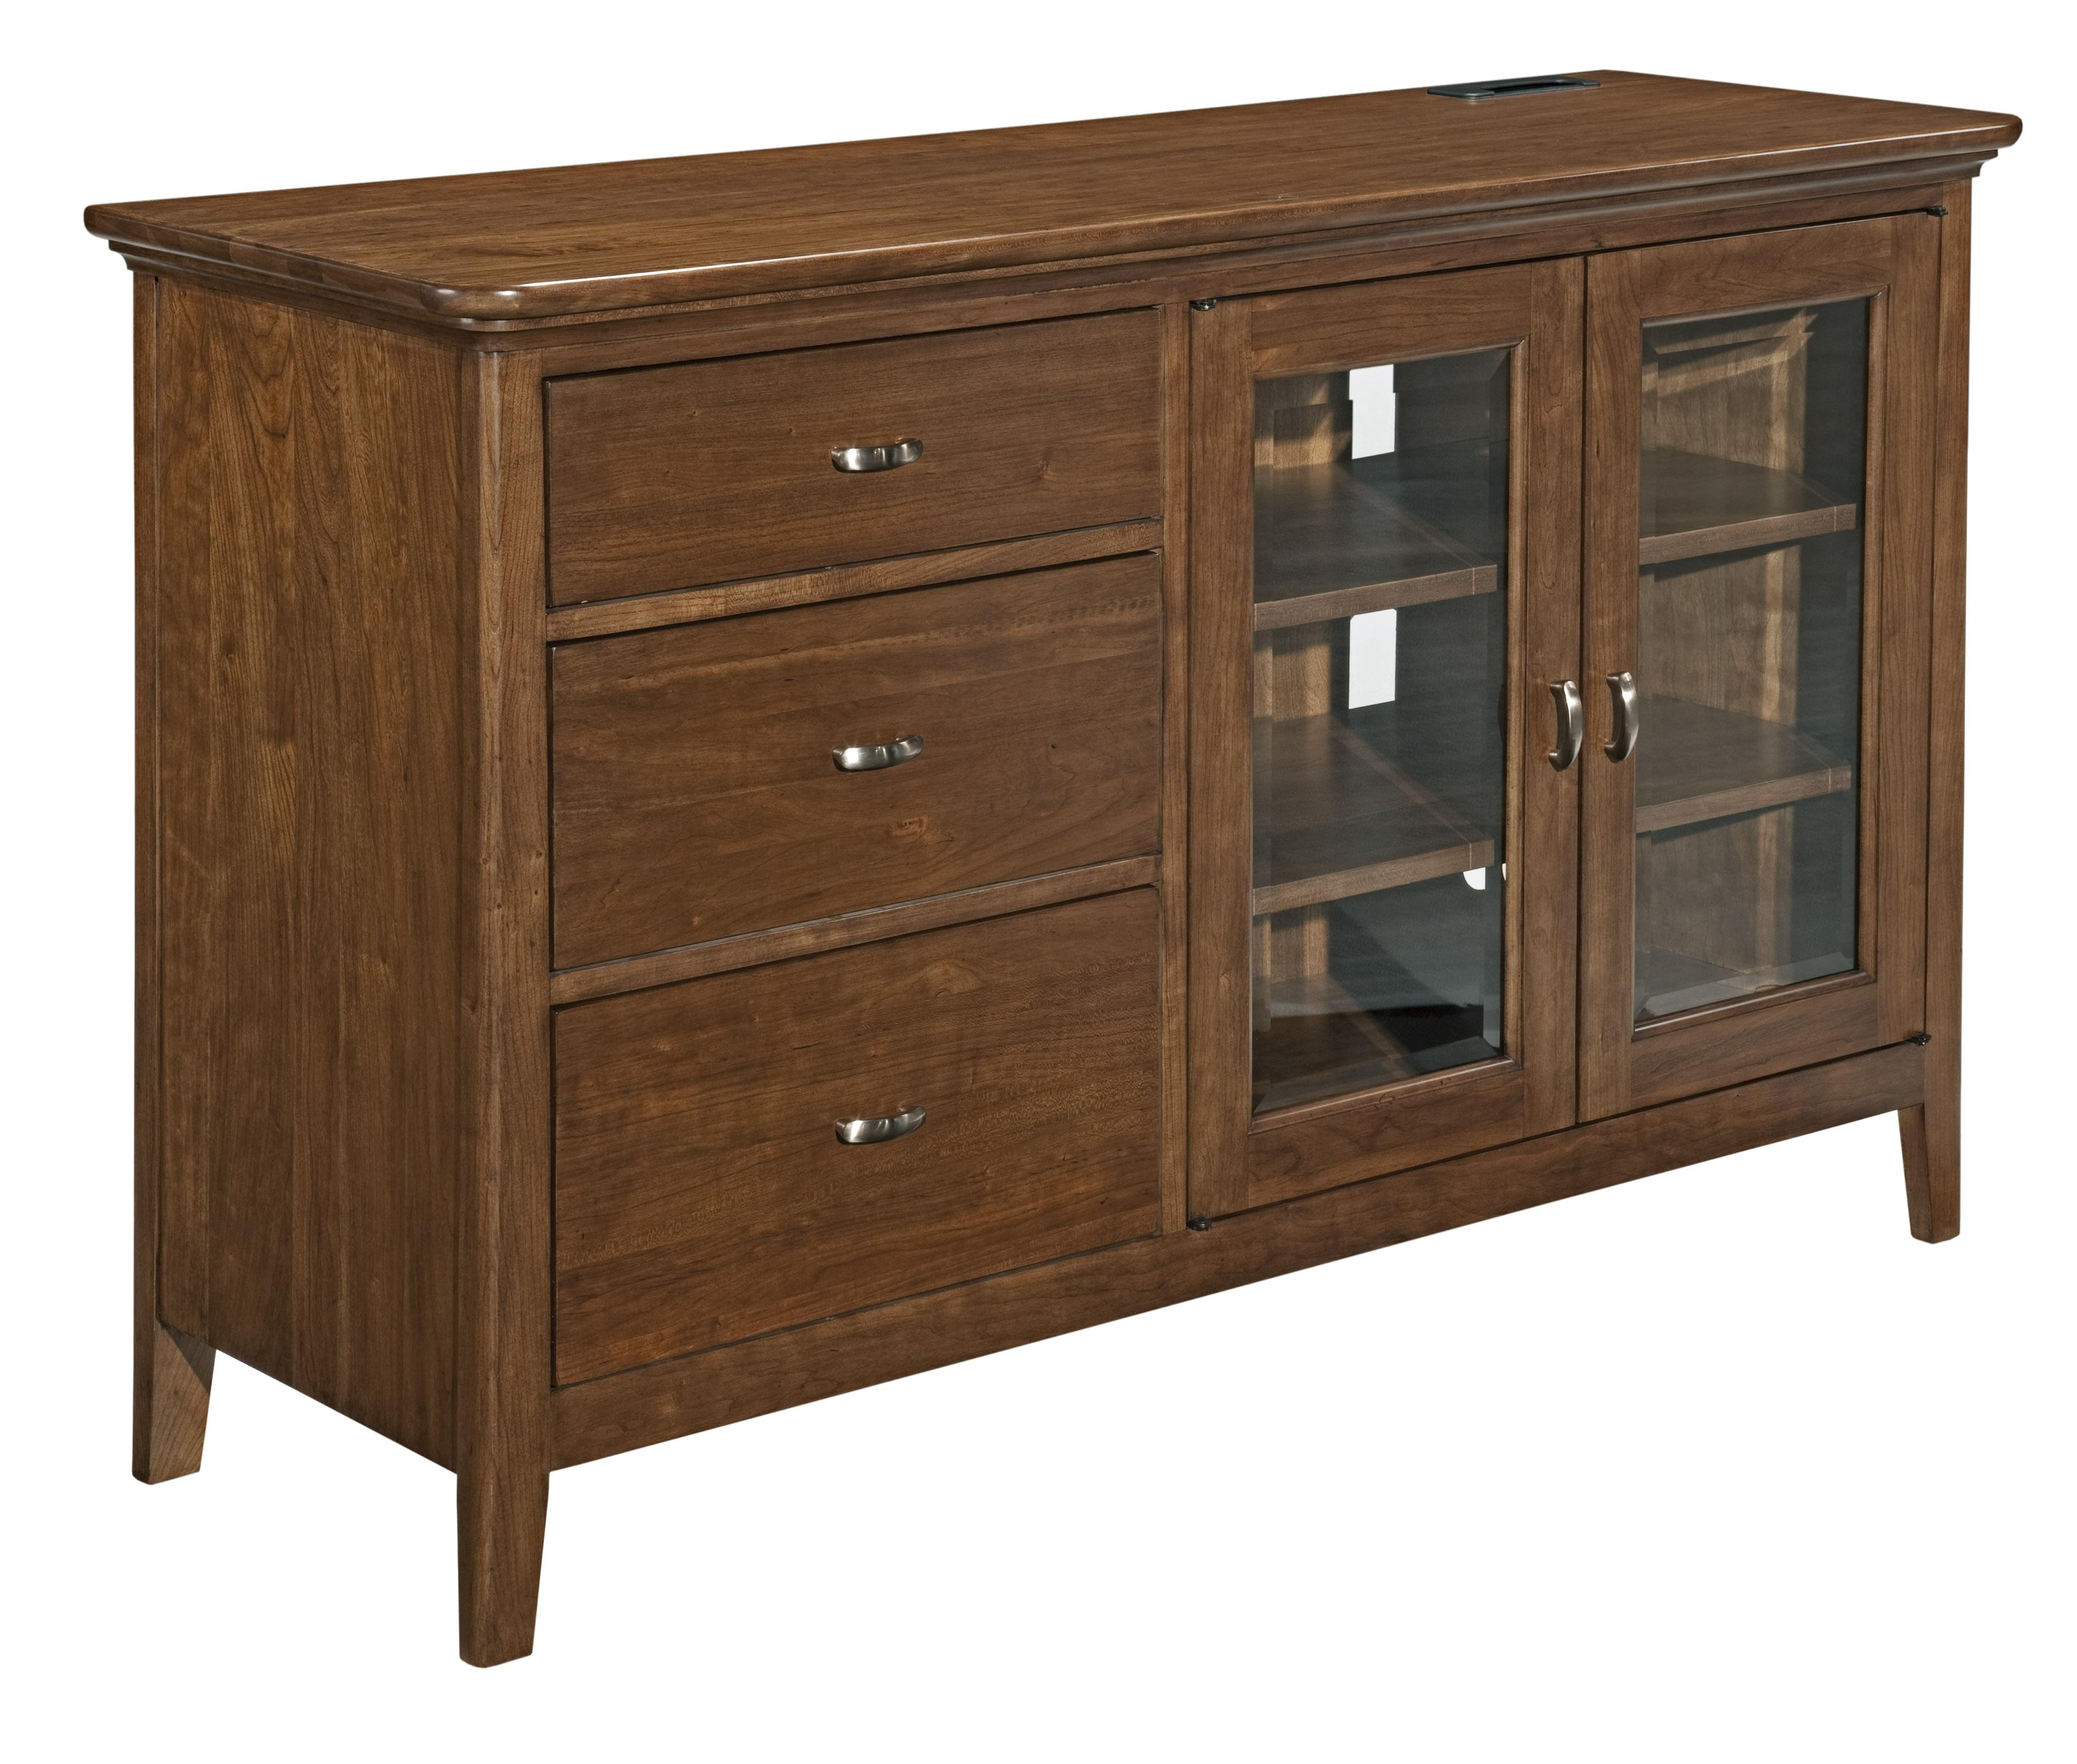 Cherry Park Entertainment Console by Kincaid Furniture at Johnny Janosik